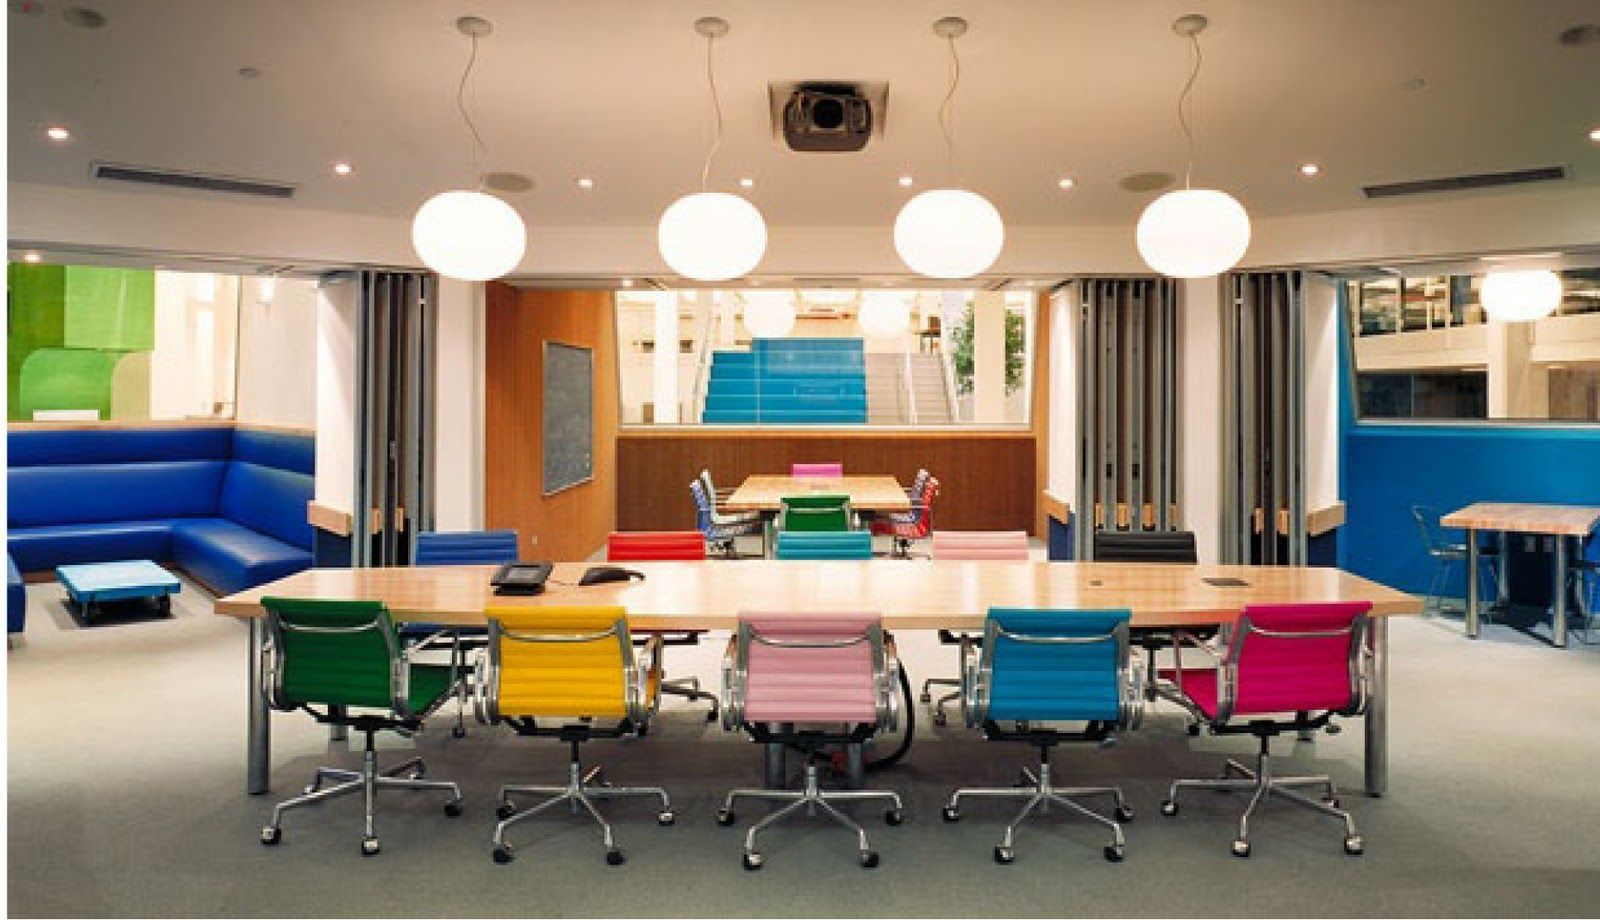 Pin by Nick Doe on Roke Meeting Rooms in 2020 | Conference ...